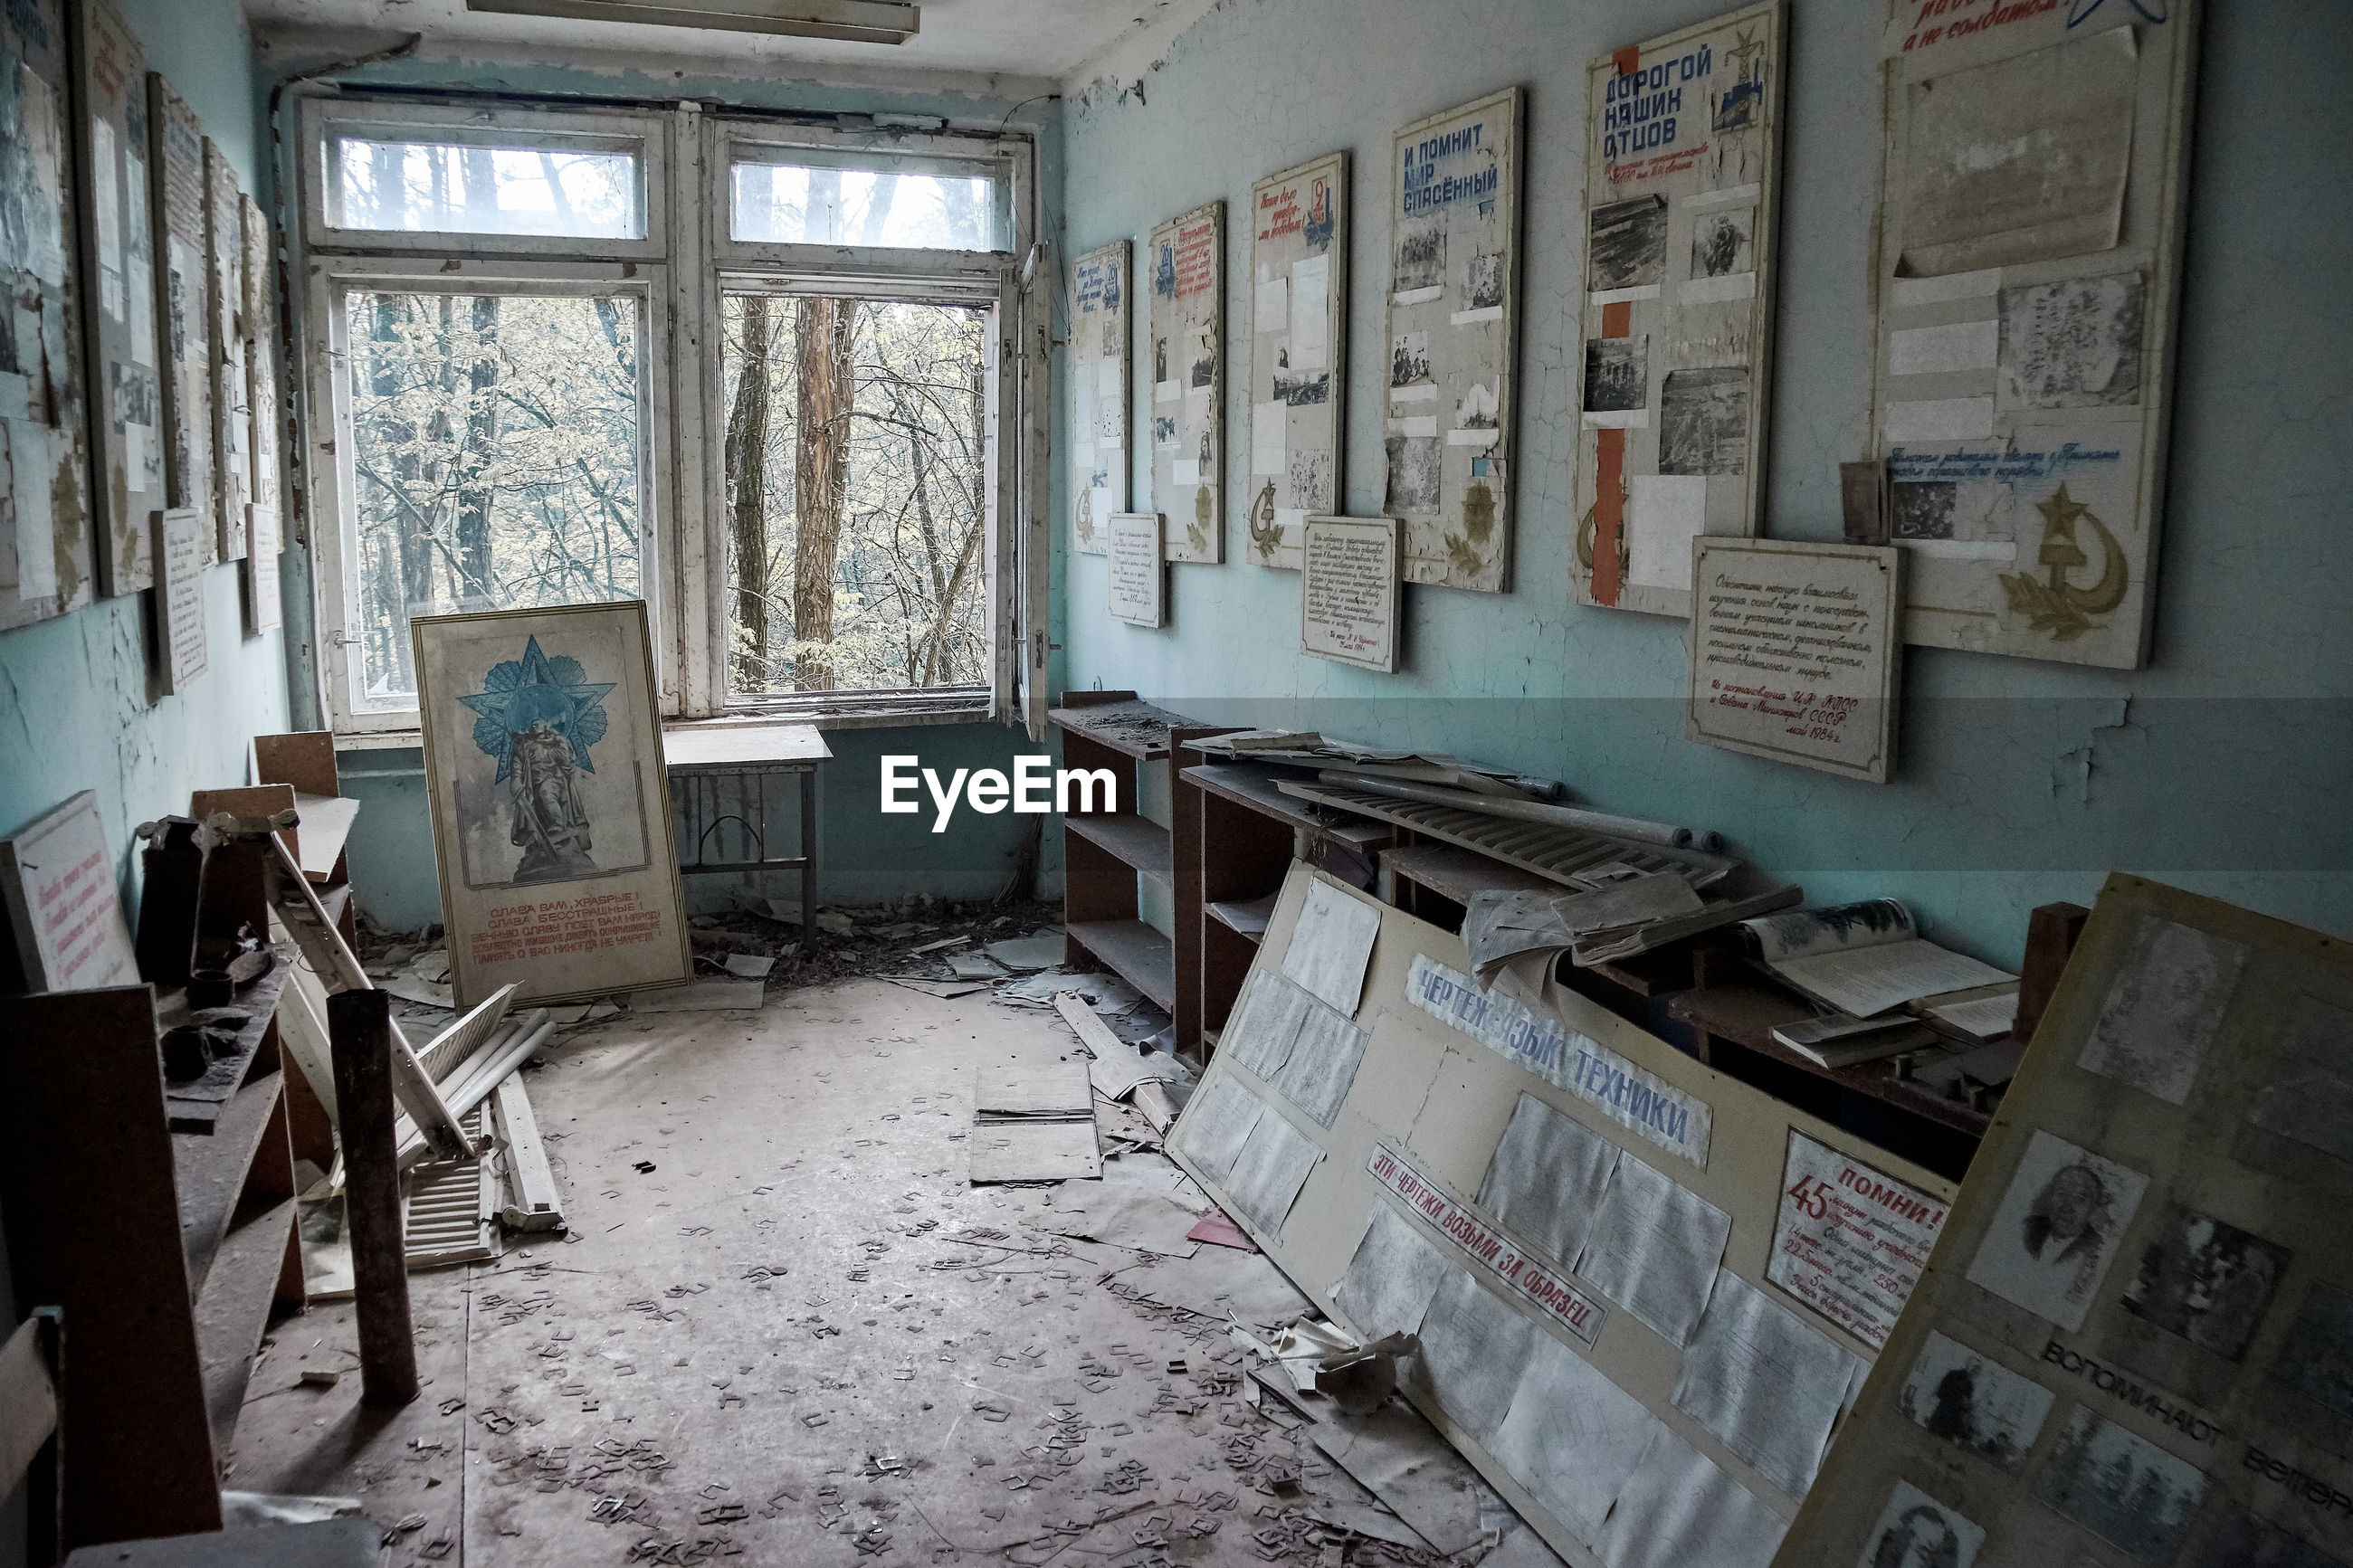 VIEW OF ABANDONED BUILDING